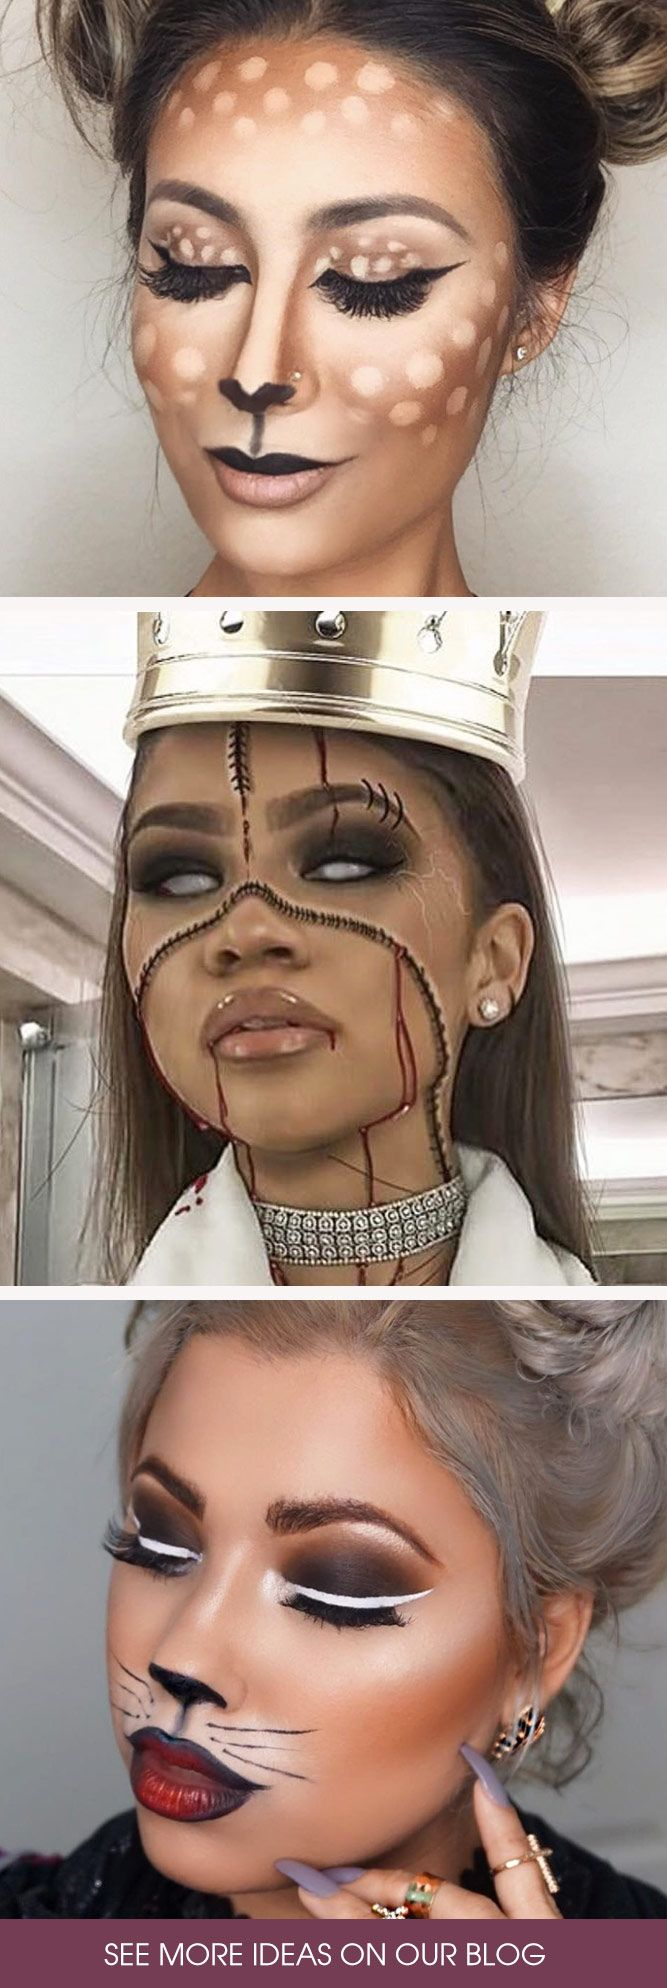 Halloween makeup ideas are extremely versatile and sometimes it becomes difficult to choose the best one. Worry not, all the best looks are gathered here!